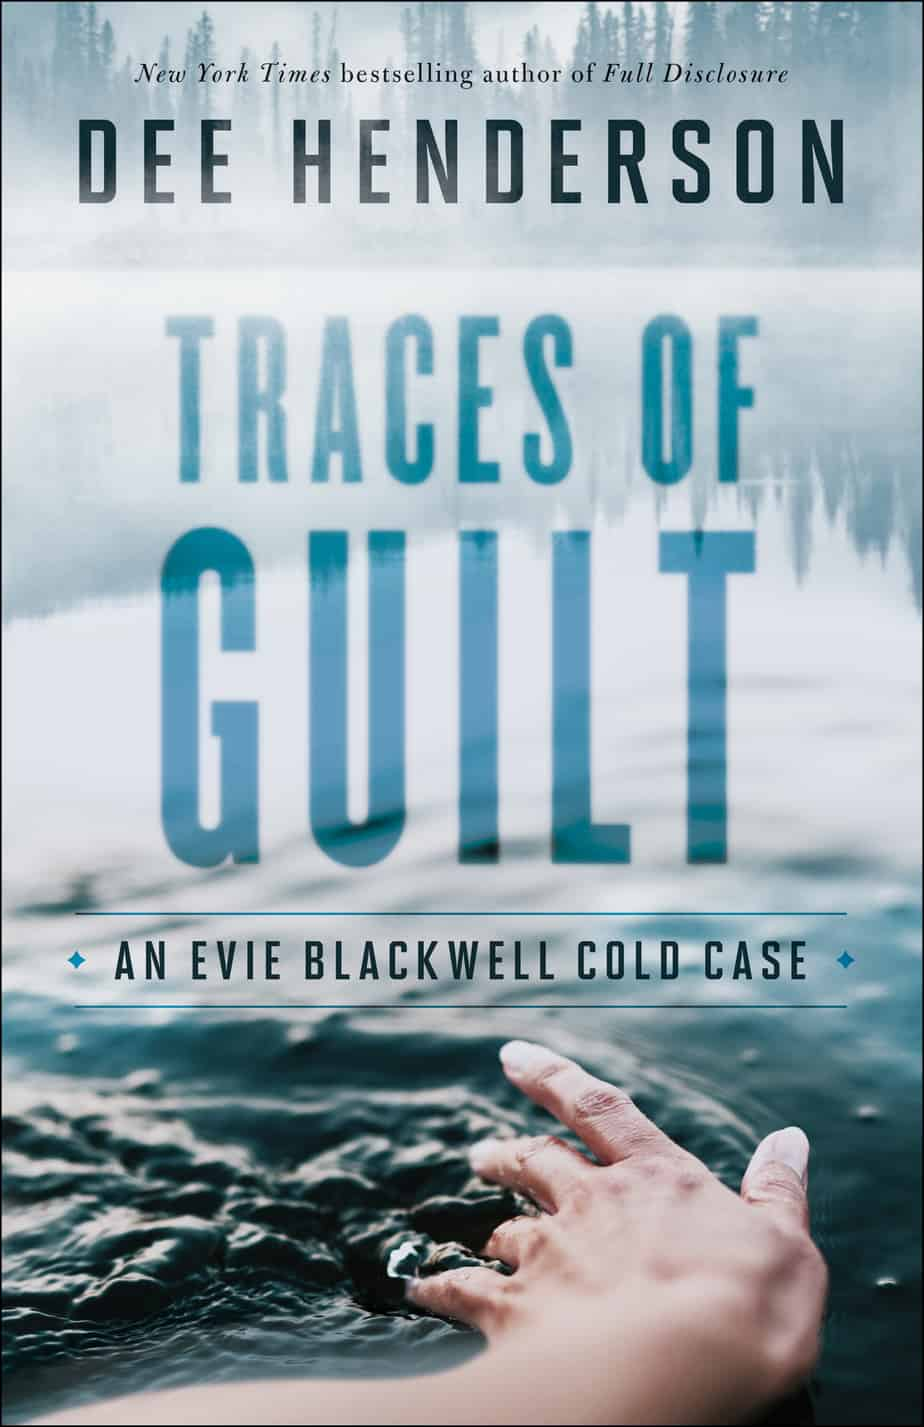 Traces of Guilt, by Dee Henderson [a review]